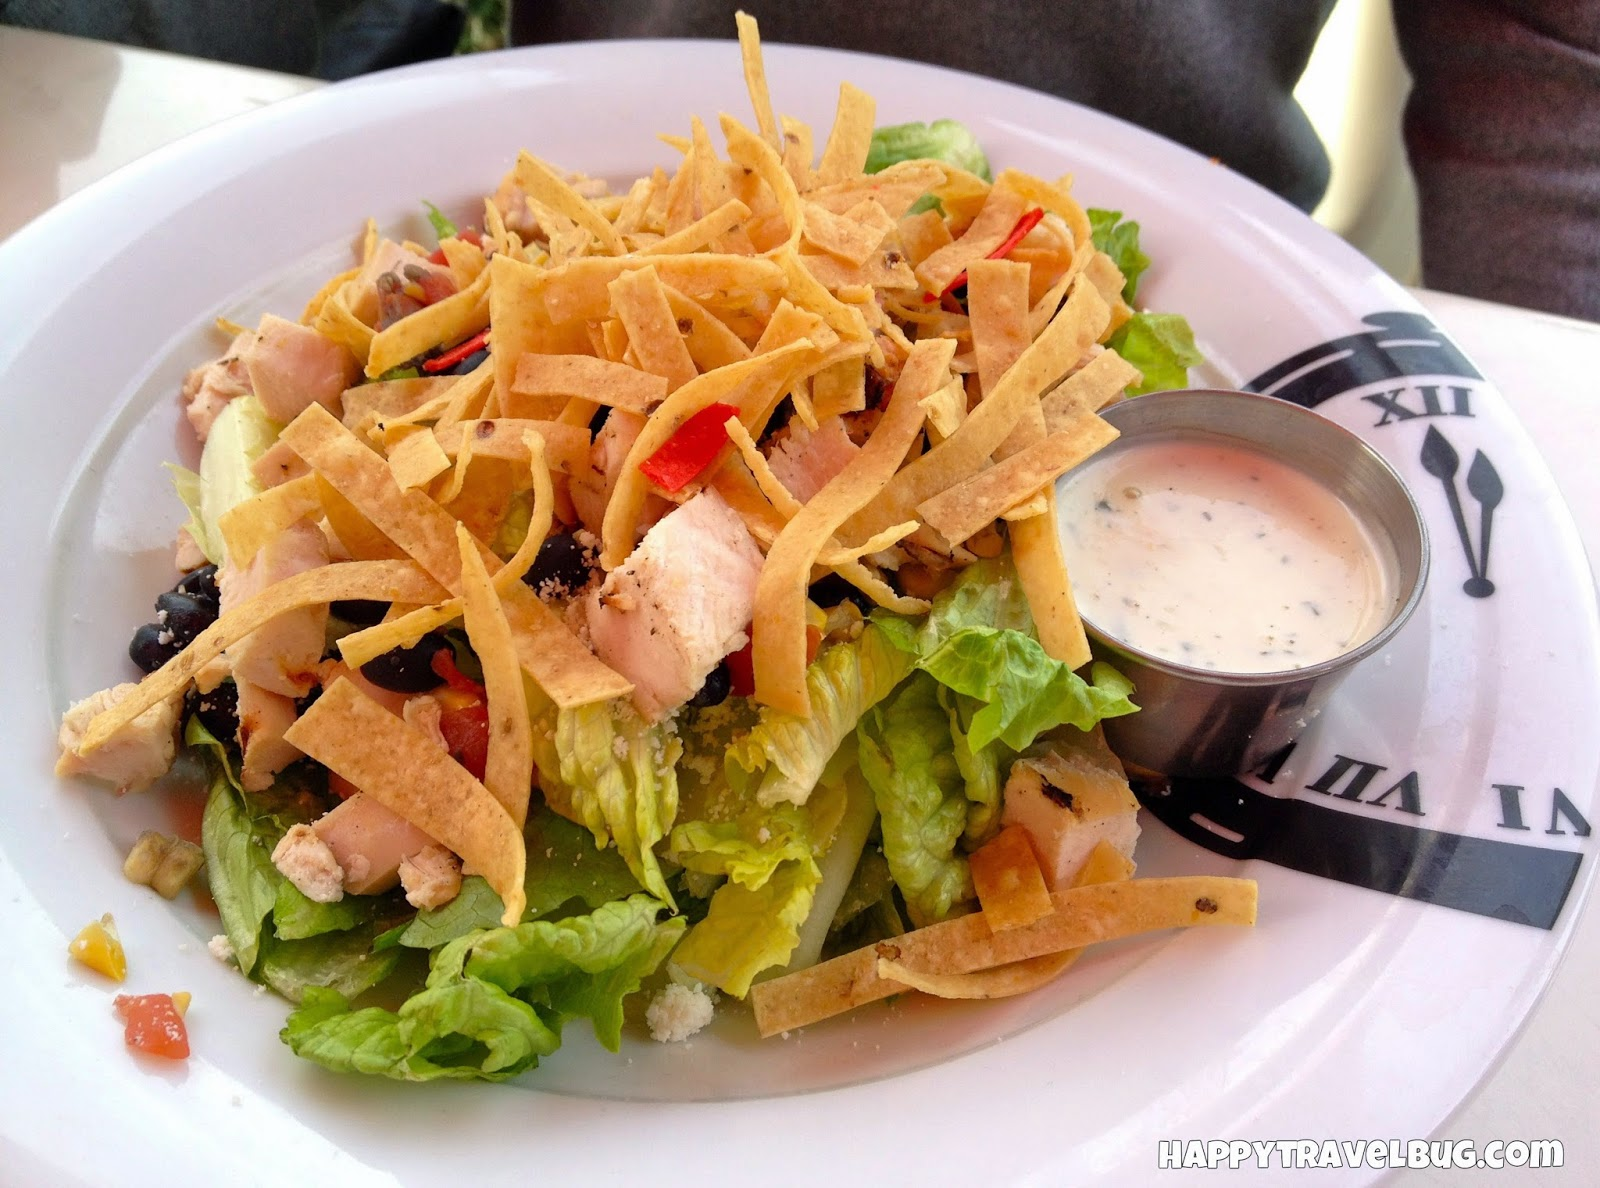 Tex-Mex chicken salad from Serendipity 3 in Las Vegas